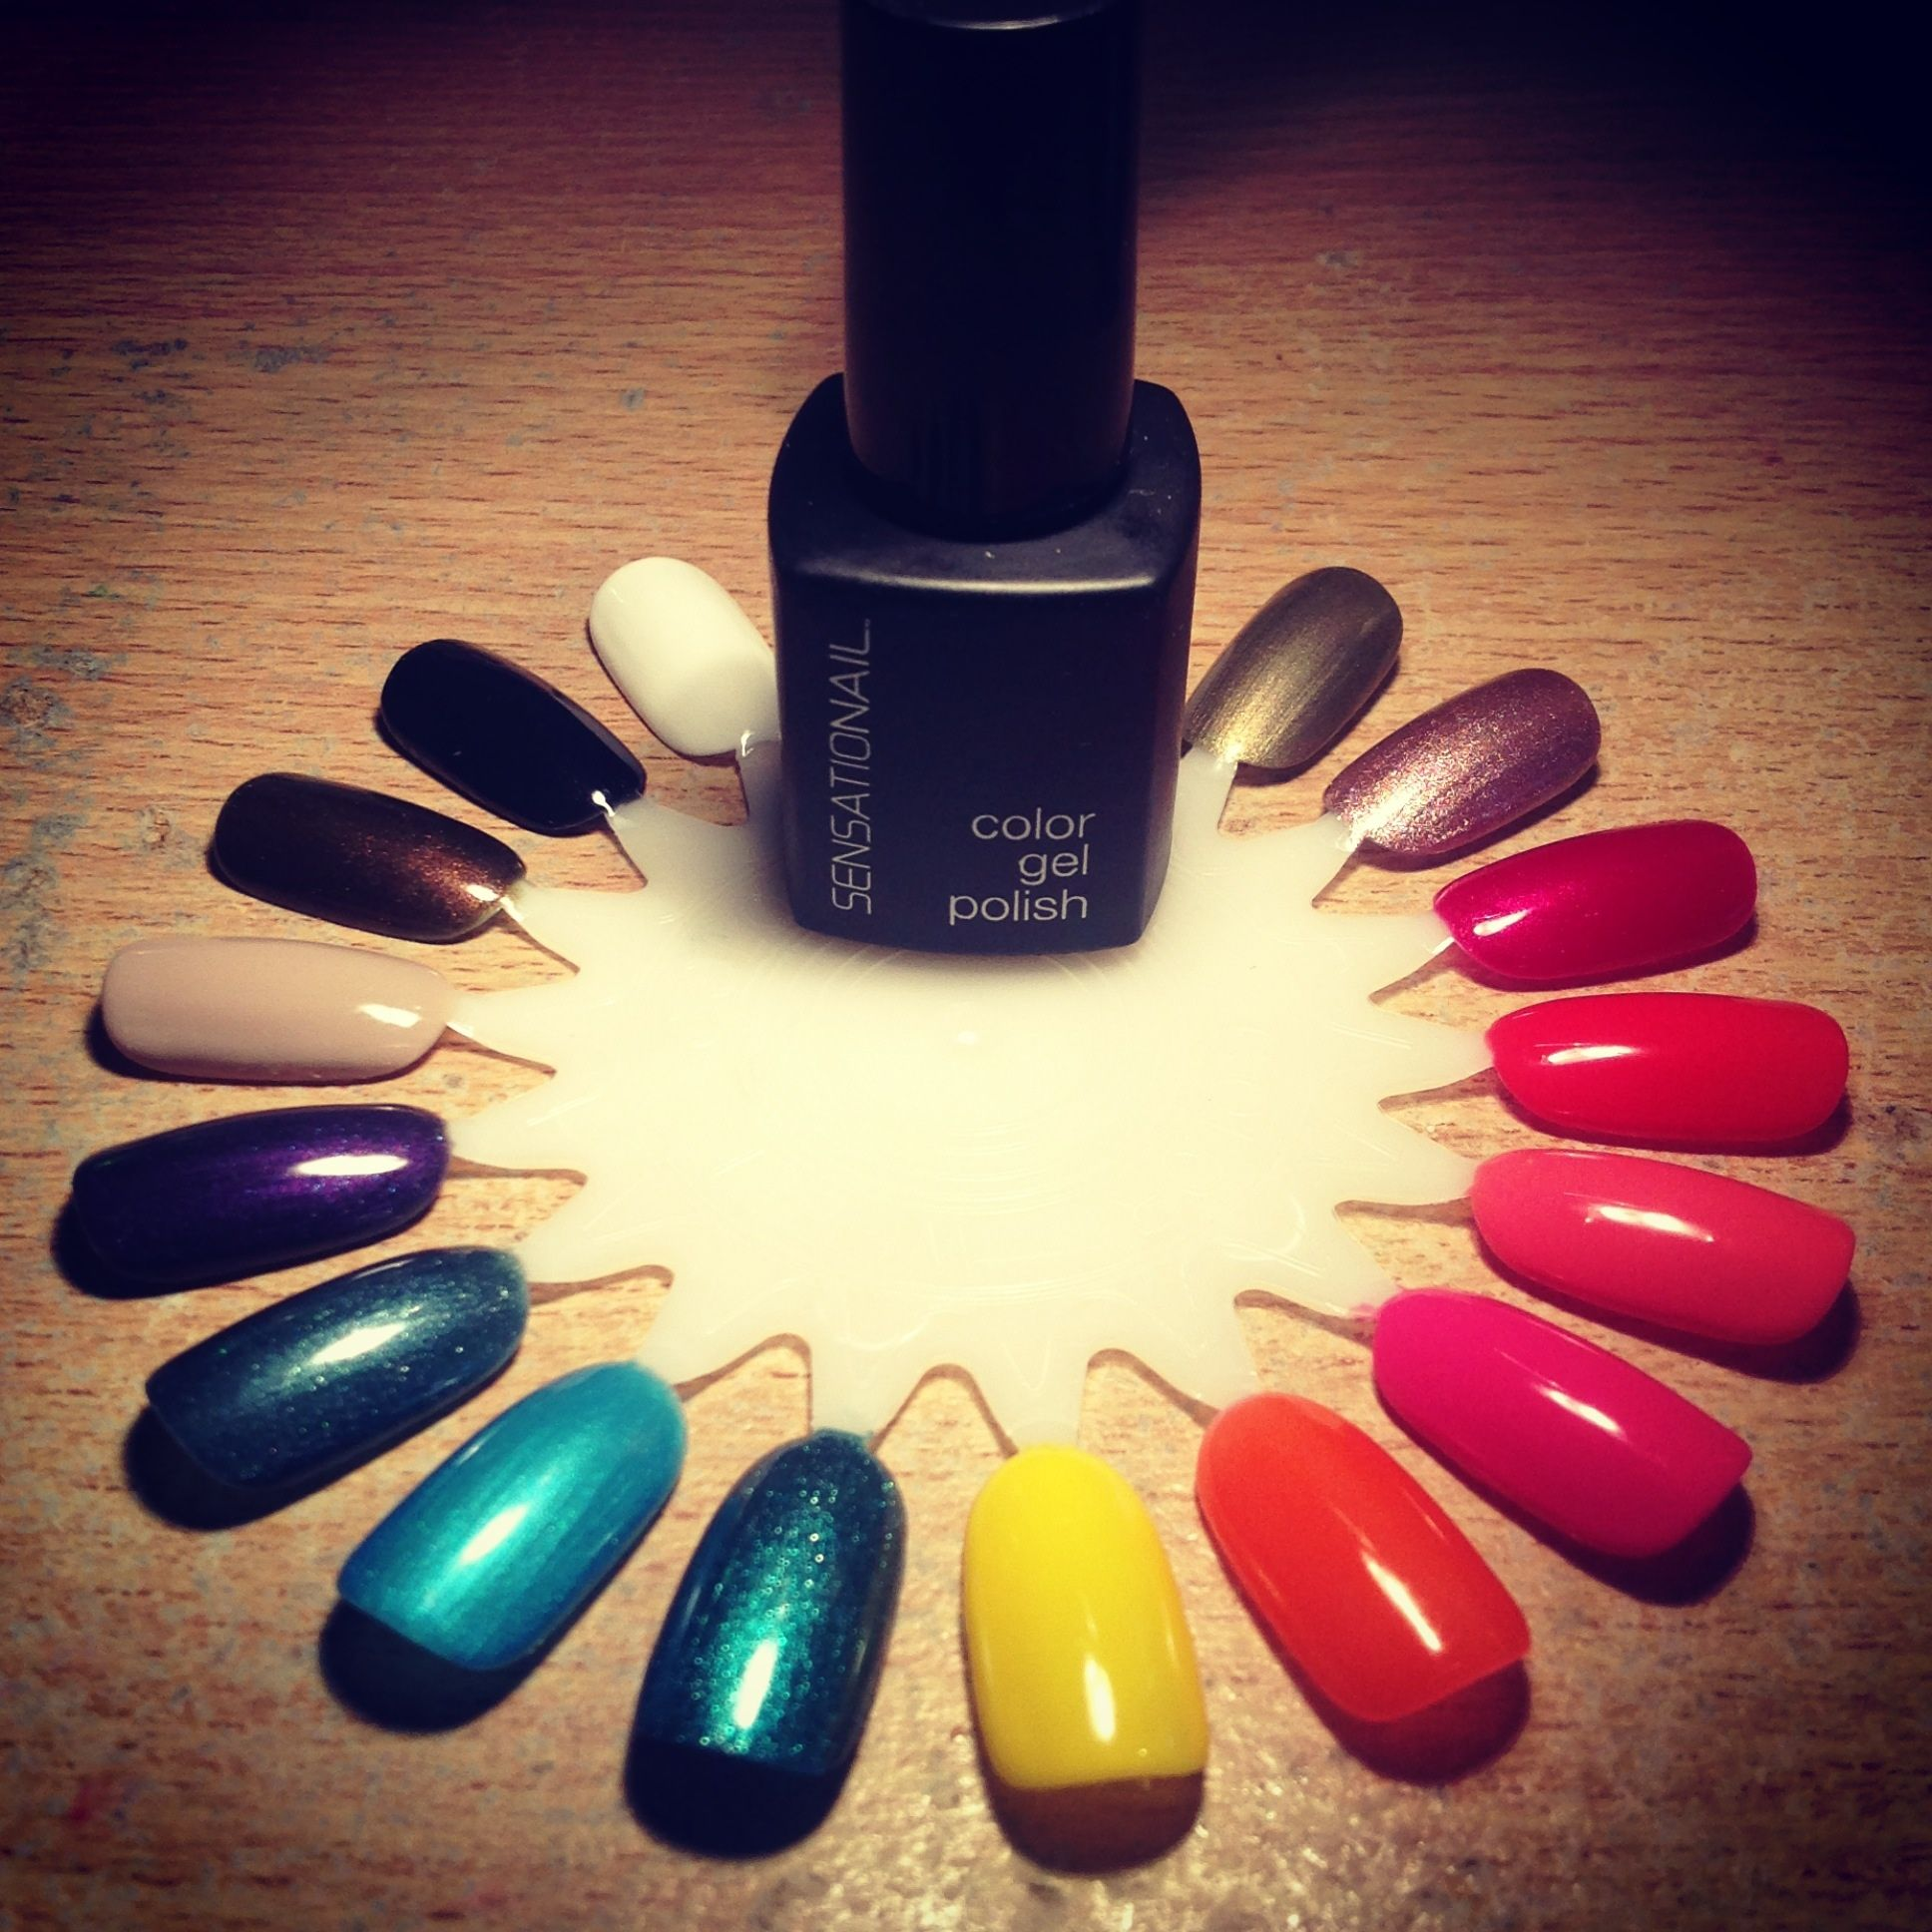 Beautiful sensationail gel polish colors sensationailgel sensationail gel nail polish up to 2 weeks of dazzling damage proof nails do it yourself manicure from home the at home diy gel polish brand solutioingenieria Images